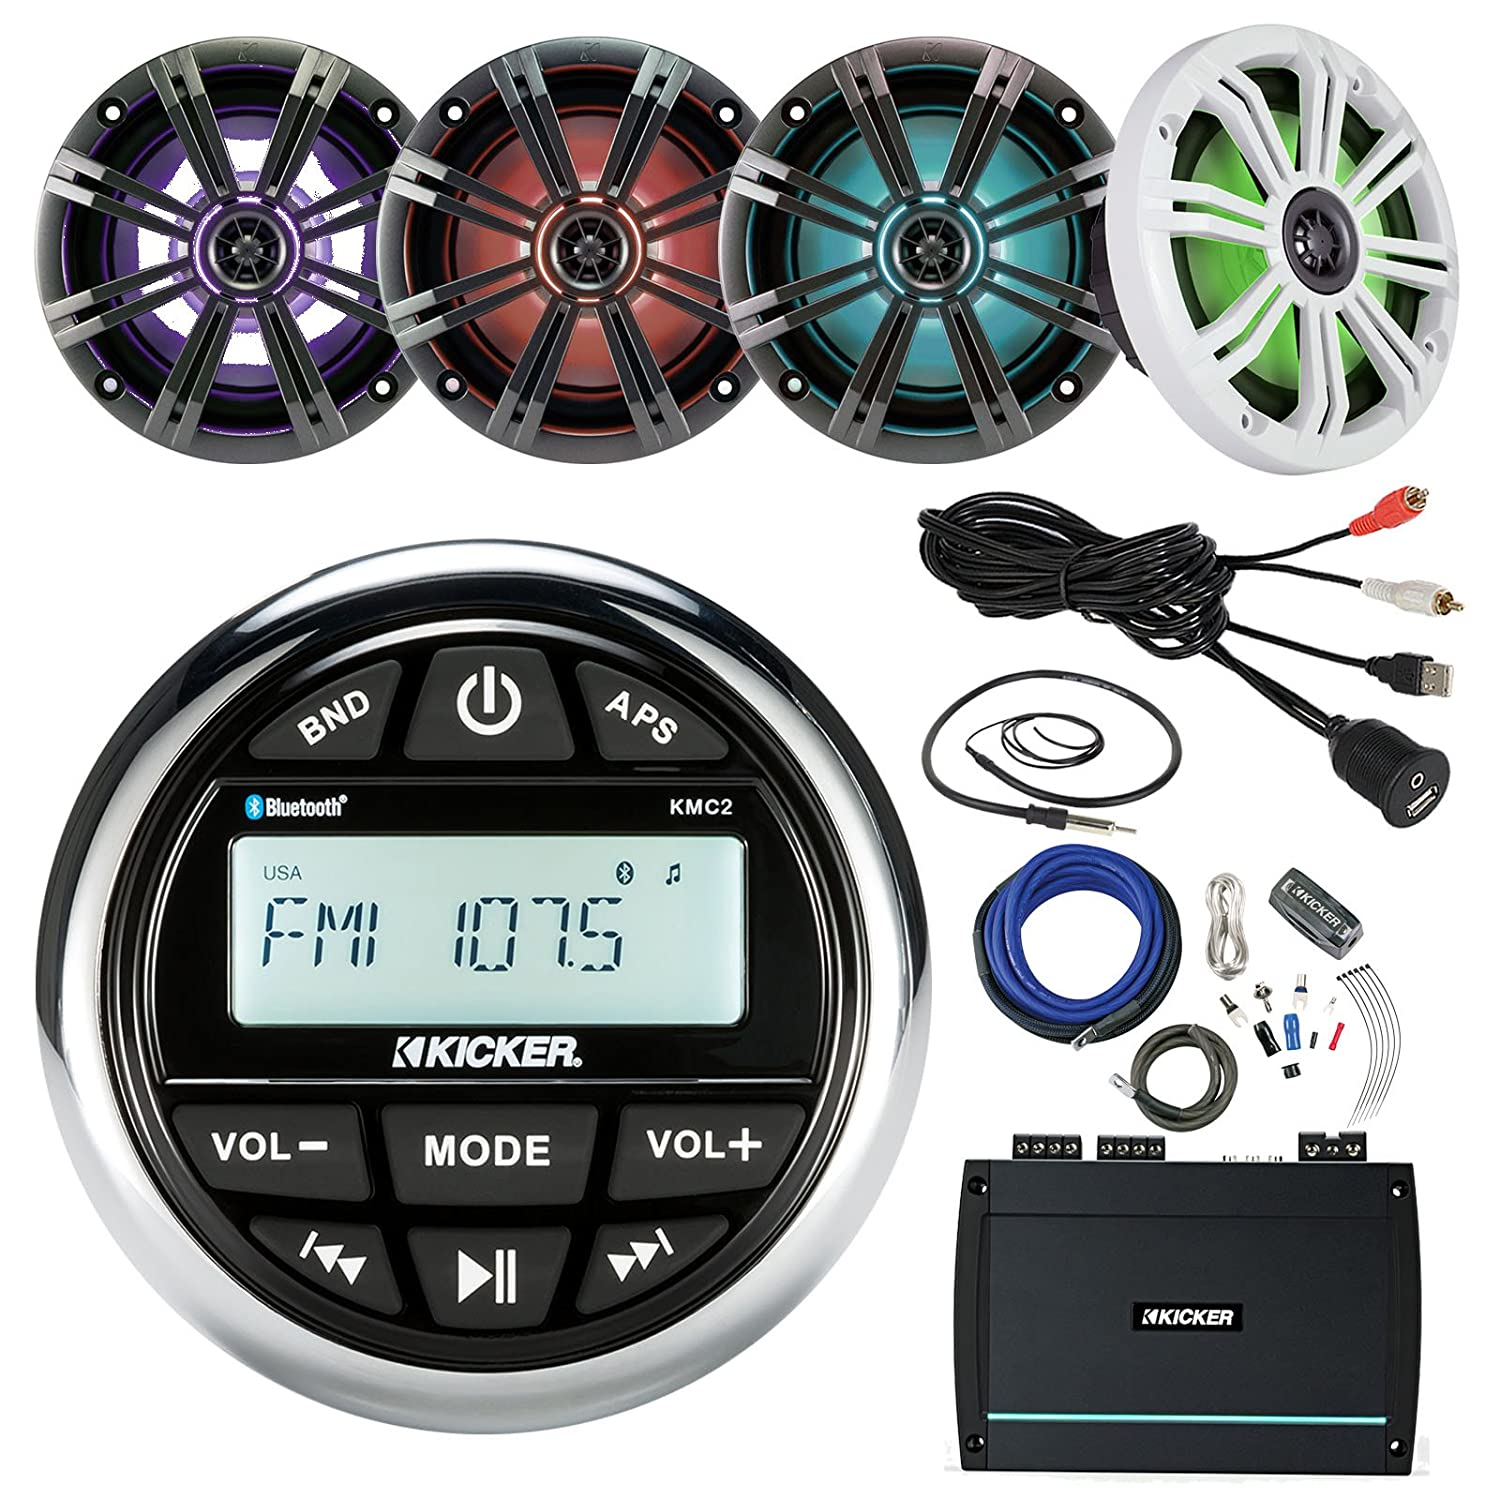 """Amazon.com: 21' - 29' Pontoon Boat Marine System Includes: CD Receiver, 4 x  Kicker 6.5"""" LED Speakers, 4-Channel Amplifier, Amp Power Kit, 22"""" Antenna,  ..."""